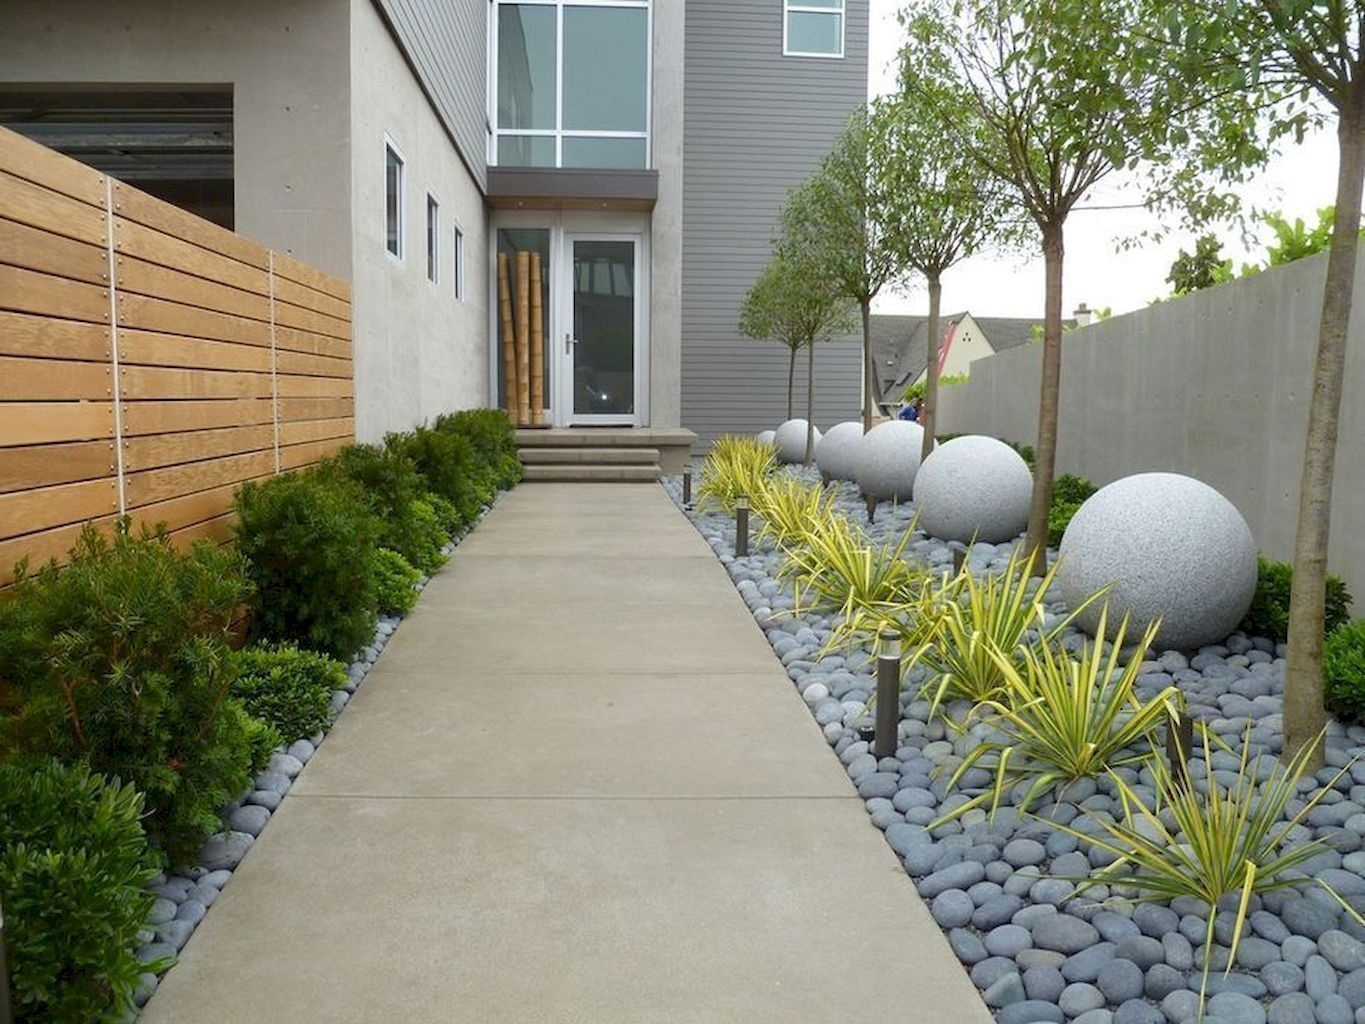 16 Low Maintenance Front Yard Landscaping Ideas Pathway Landscaping Modern Landscaping Landscape Design